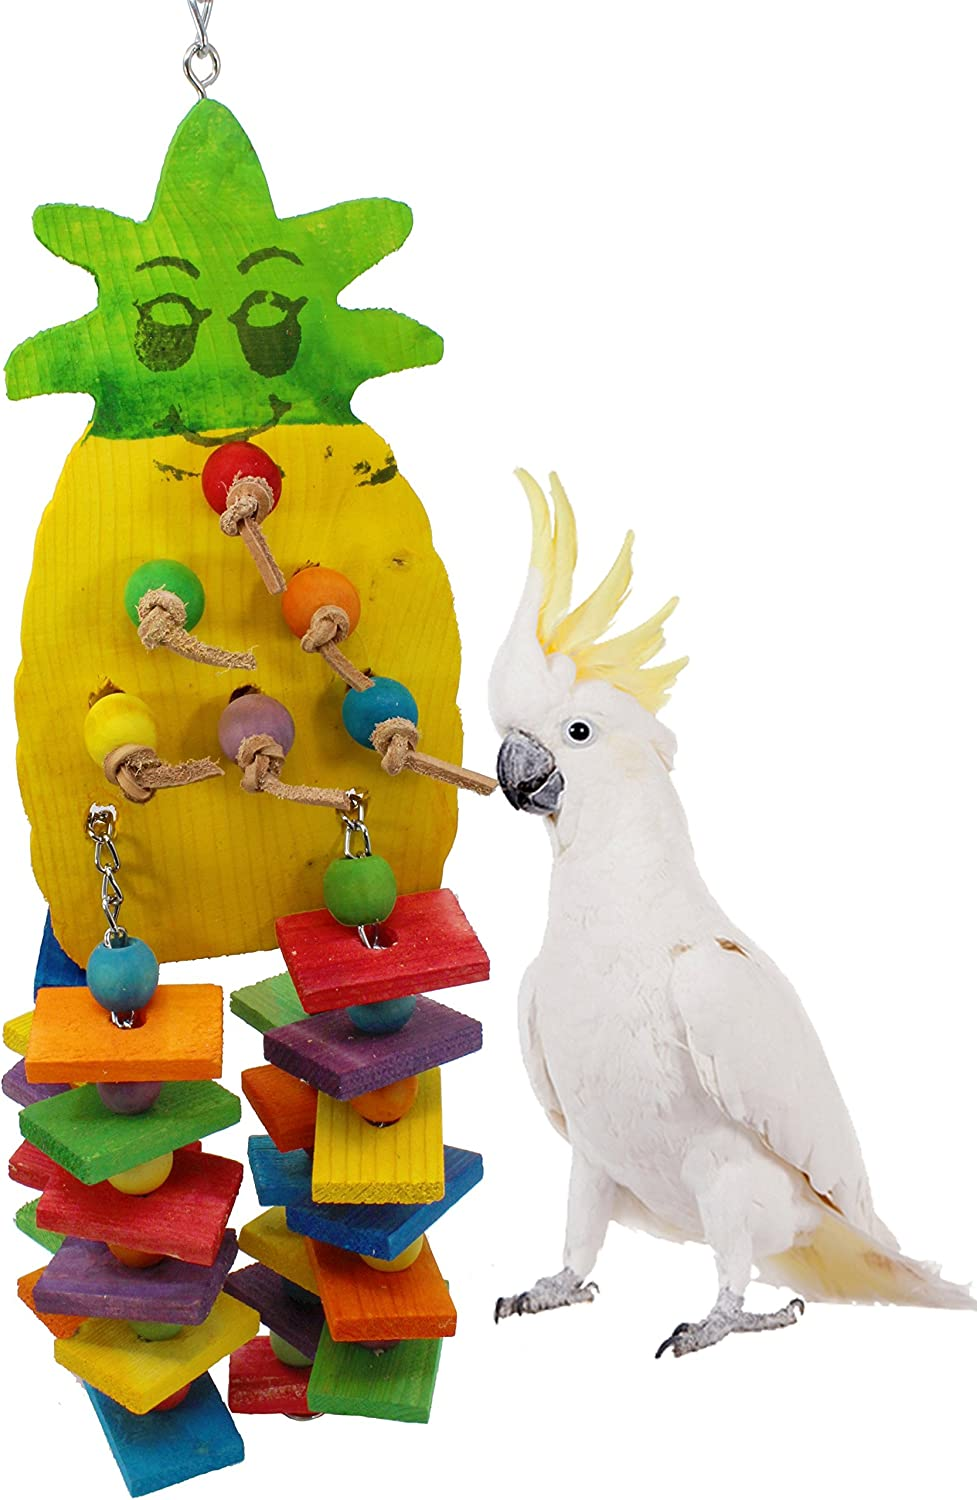 Bonka Bird Toys 1734 Large Pineapple Wood Bird Toy Parred cage Macaw African Grey chew Foraging Cockatoo Supplies Big Knots Blocks Leather preening Aviary Accessories